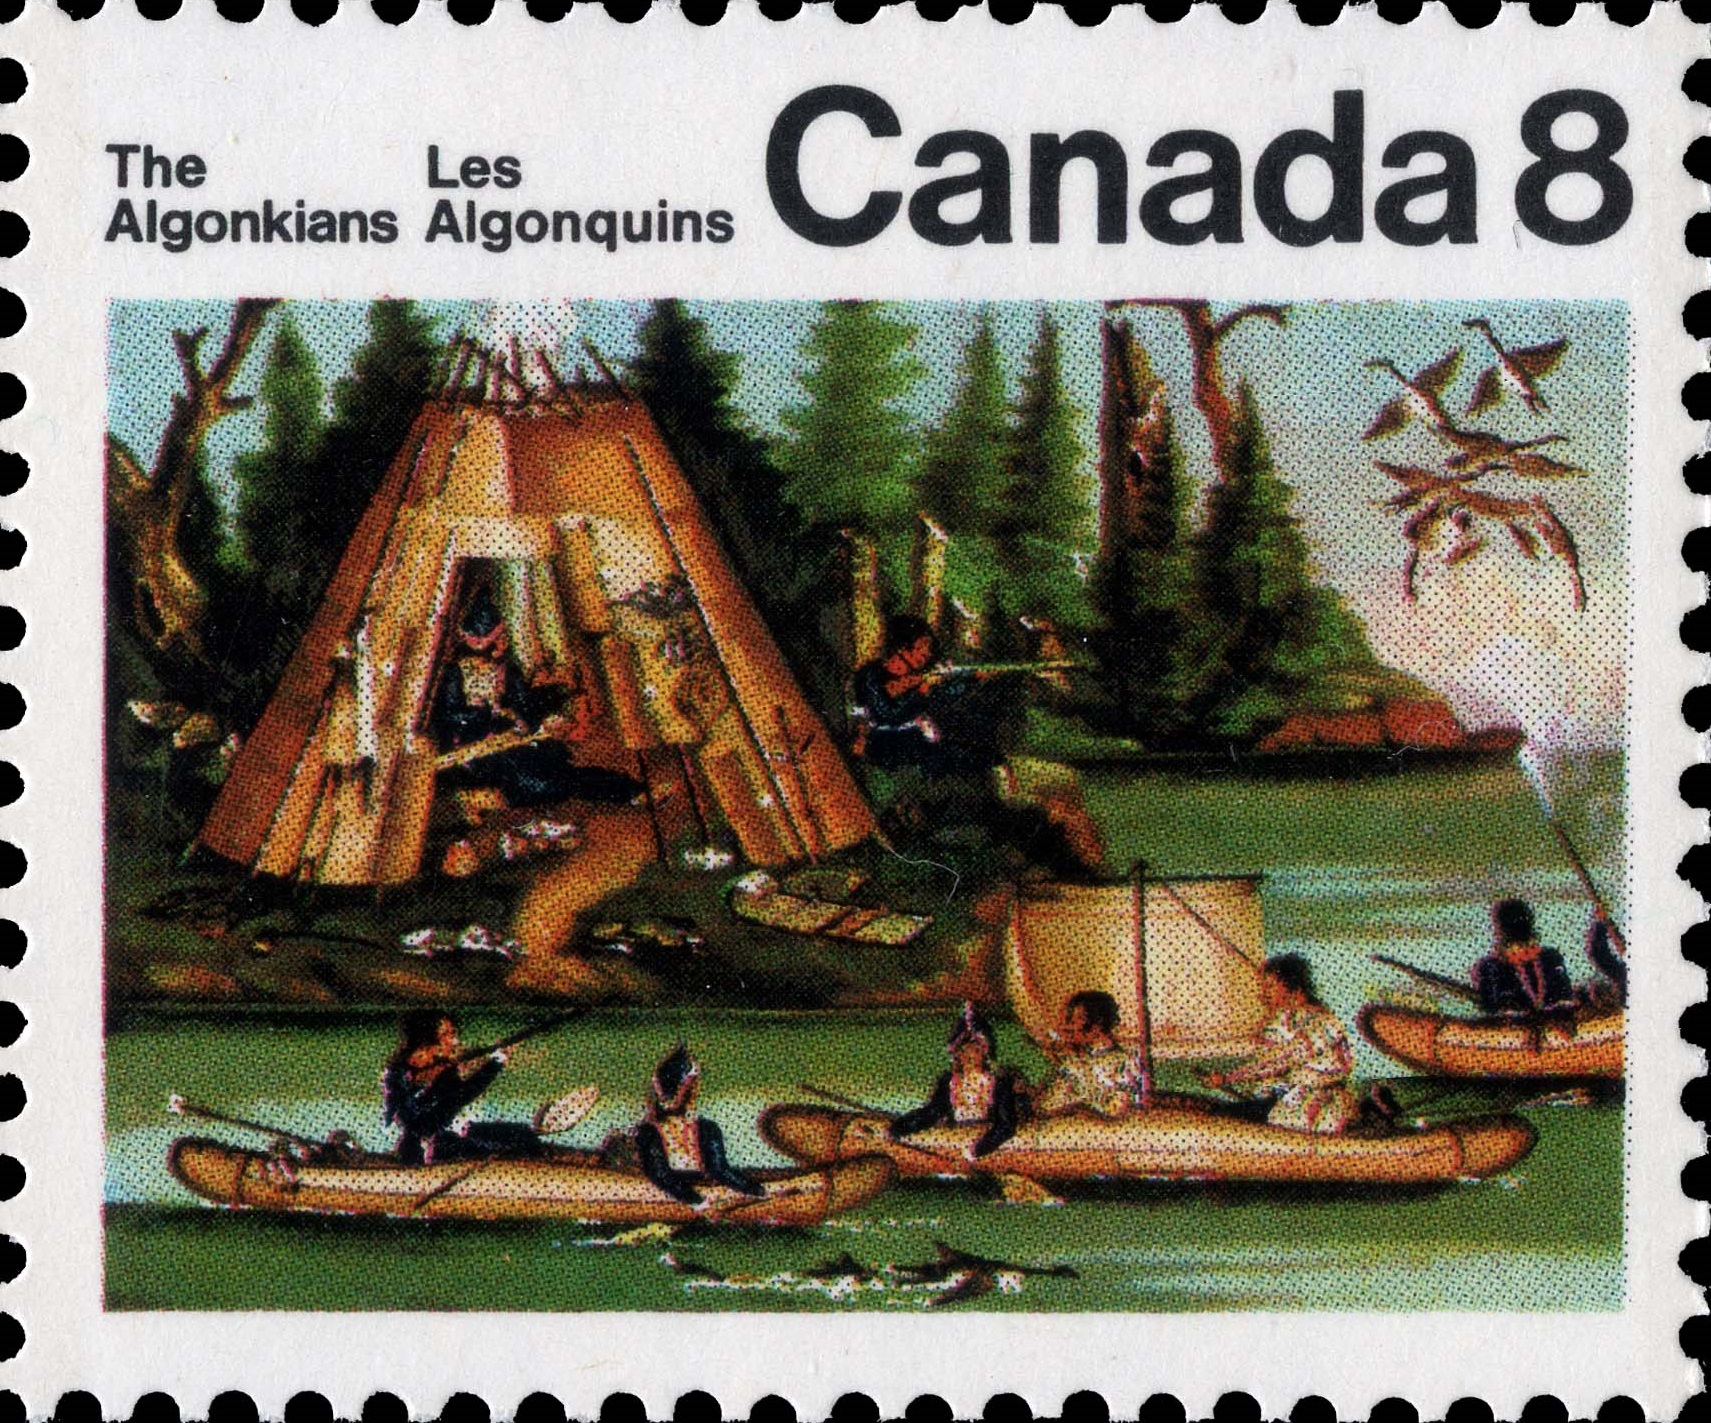 Micmac Indians Canada Postage Stamp | Indians of Canada, The Algonkians